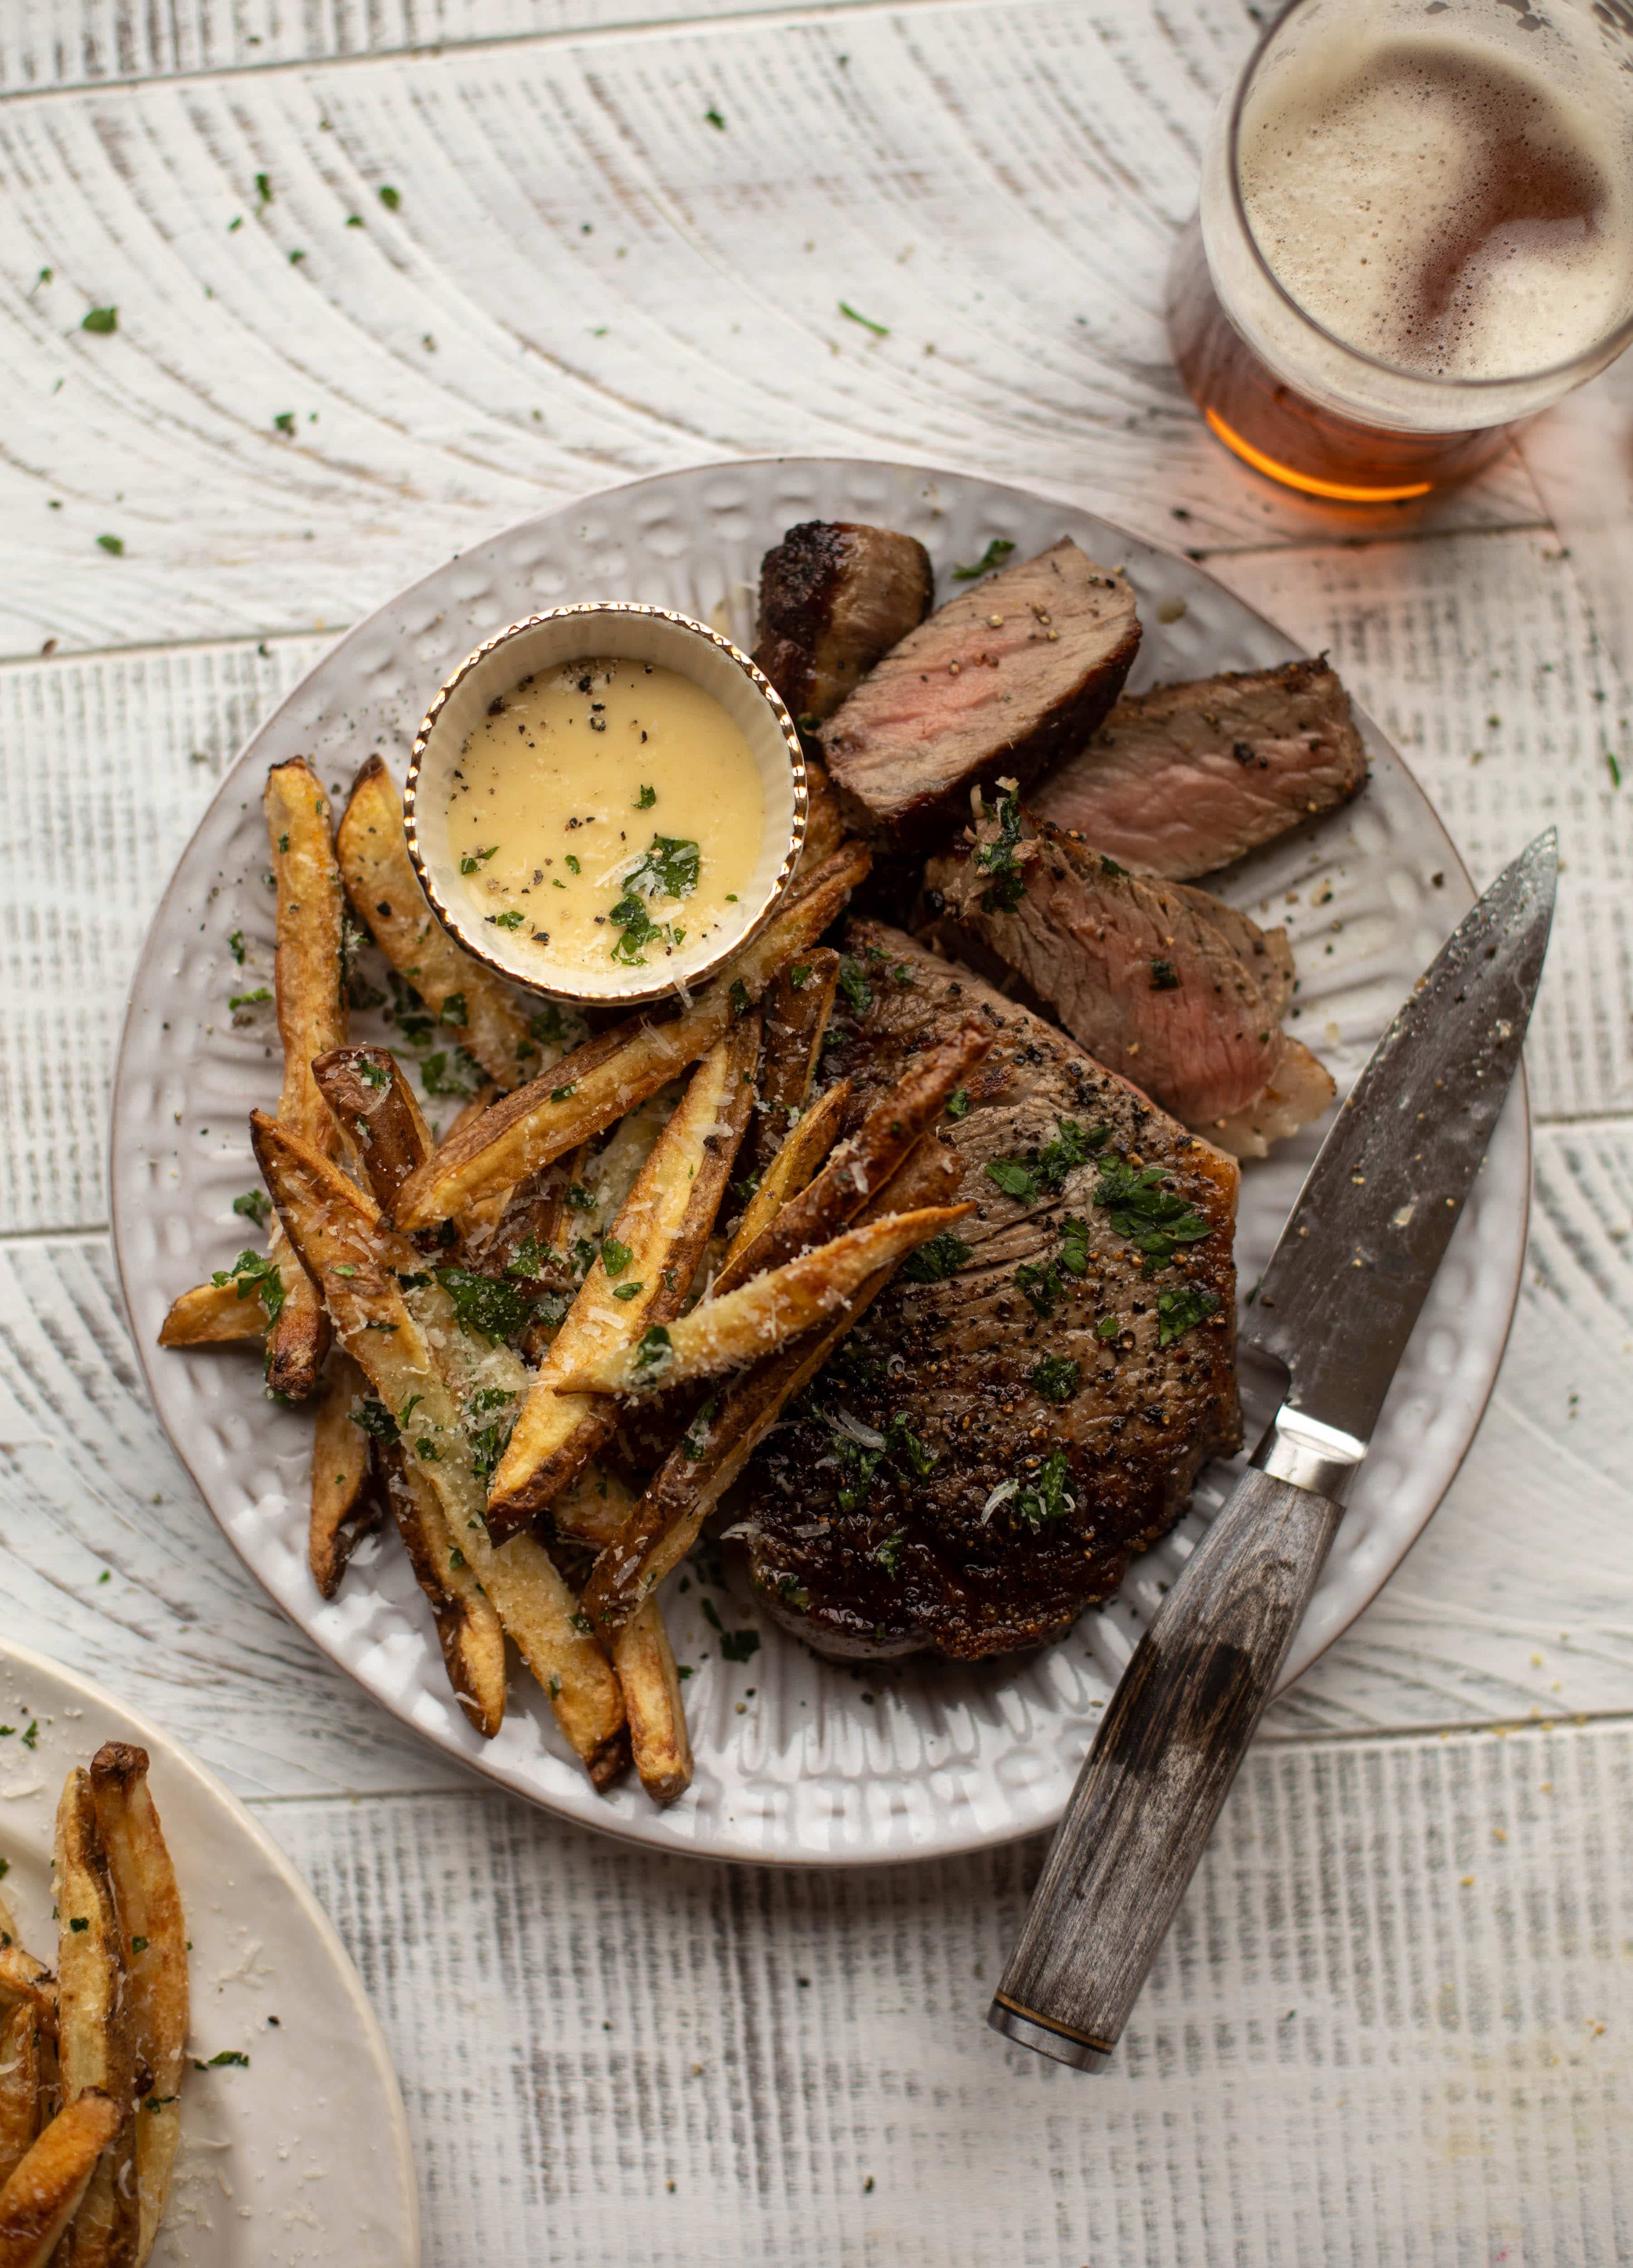 This is our favorite steak frites! Seared skillet steak and crispy fries made in the air fryer, topped with truffle salt, parmesan and herbs!